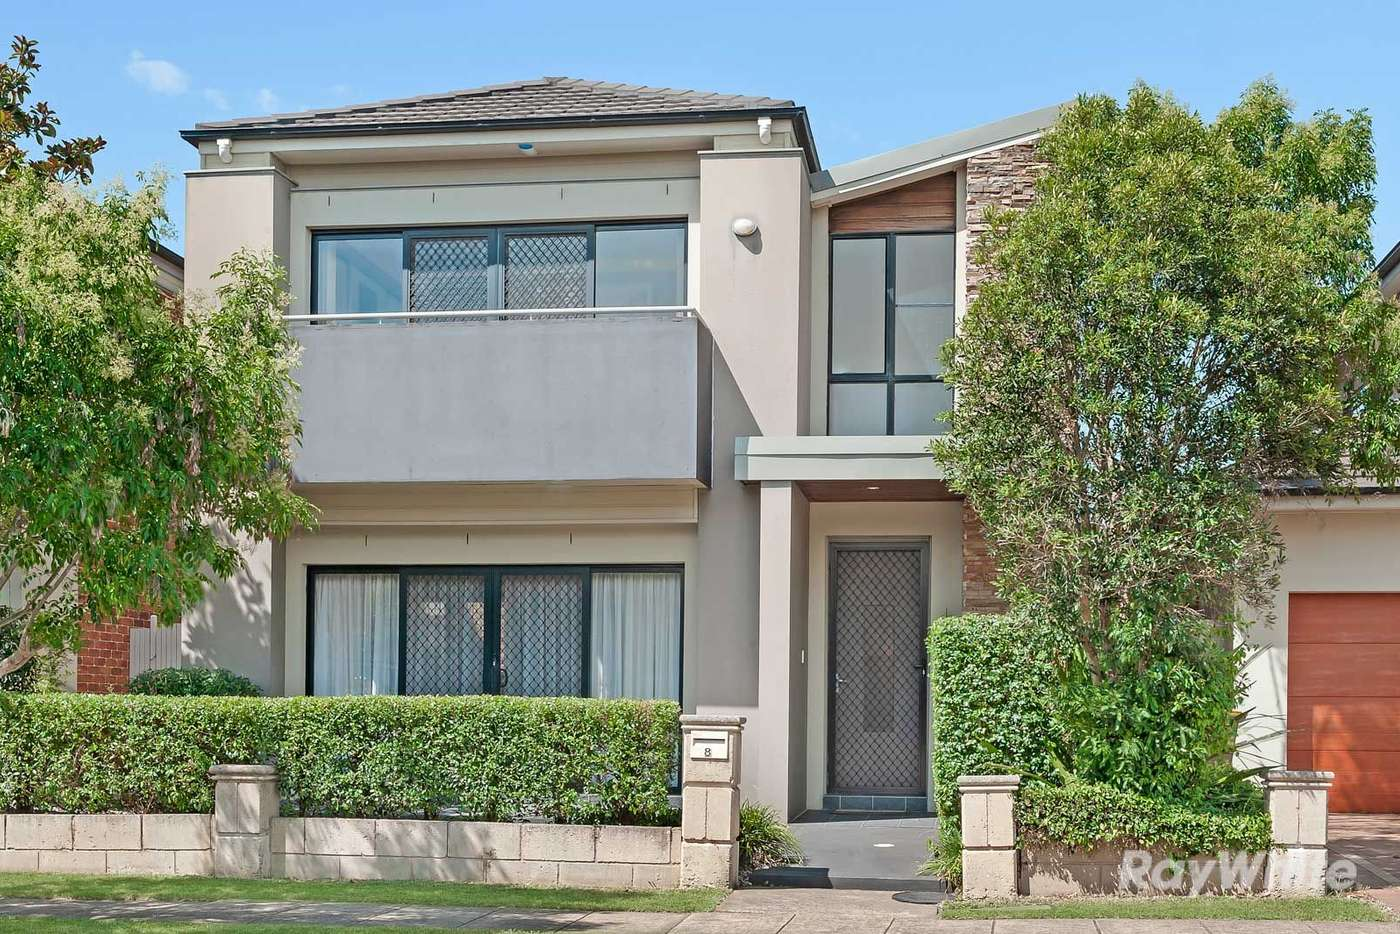 Main view of Homely house listing, 8 Malton Street, Stanhope Gardens NSW 2768